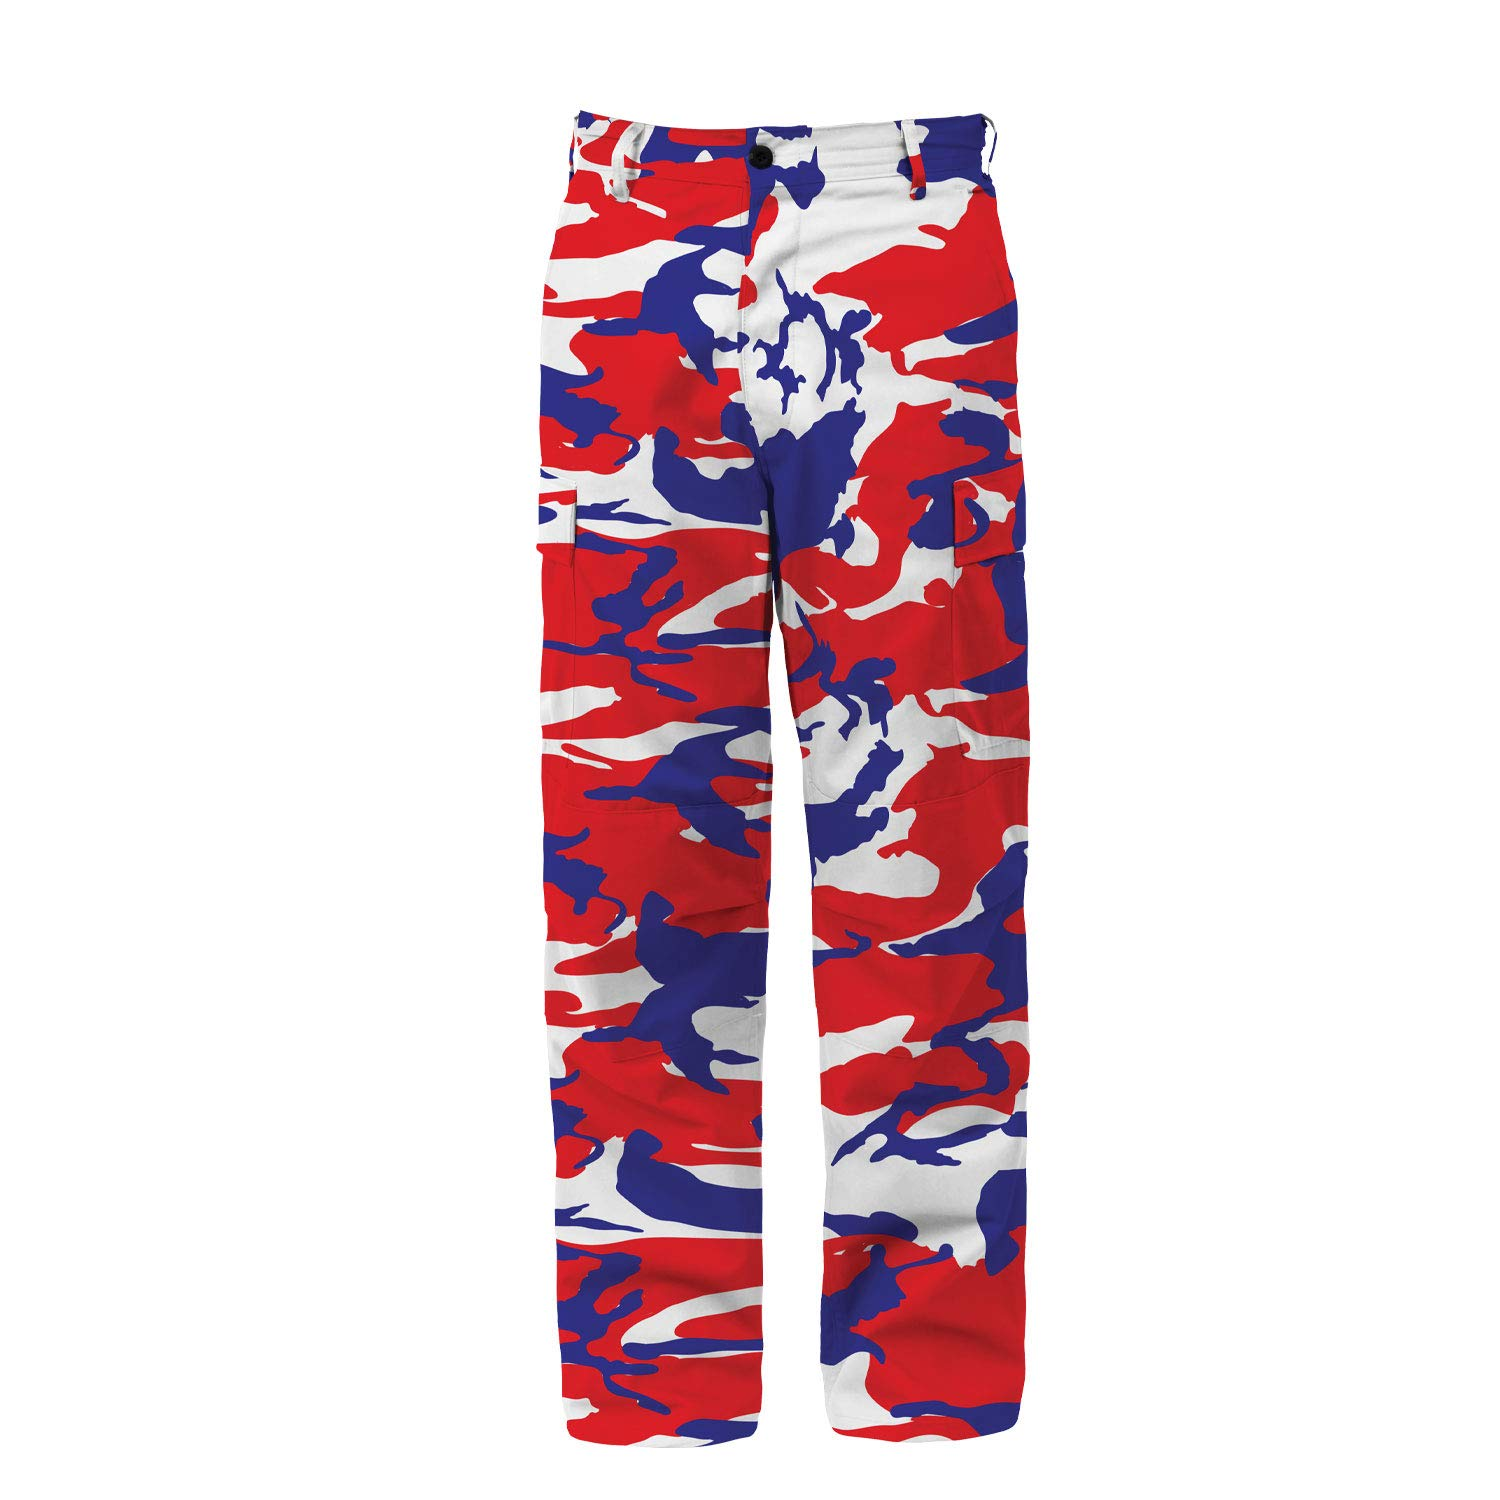 Rothco Camo BDU Pants, Red/White/Blue Camo, XS